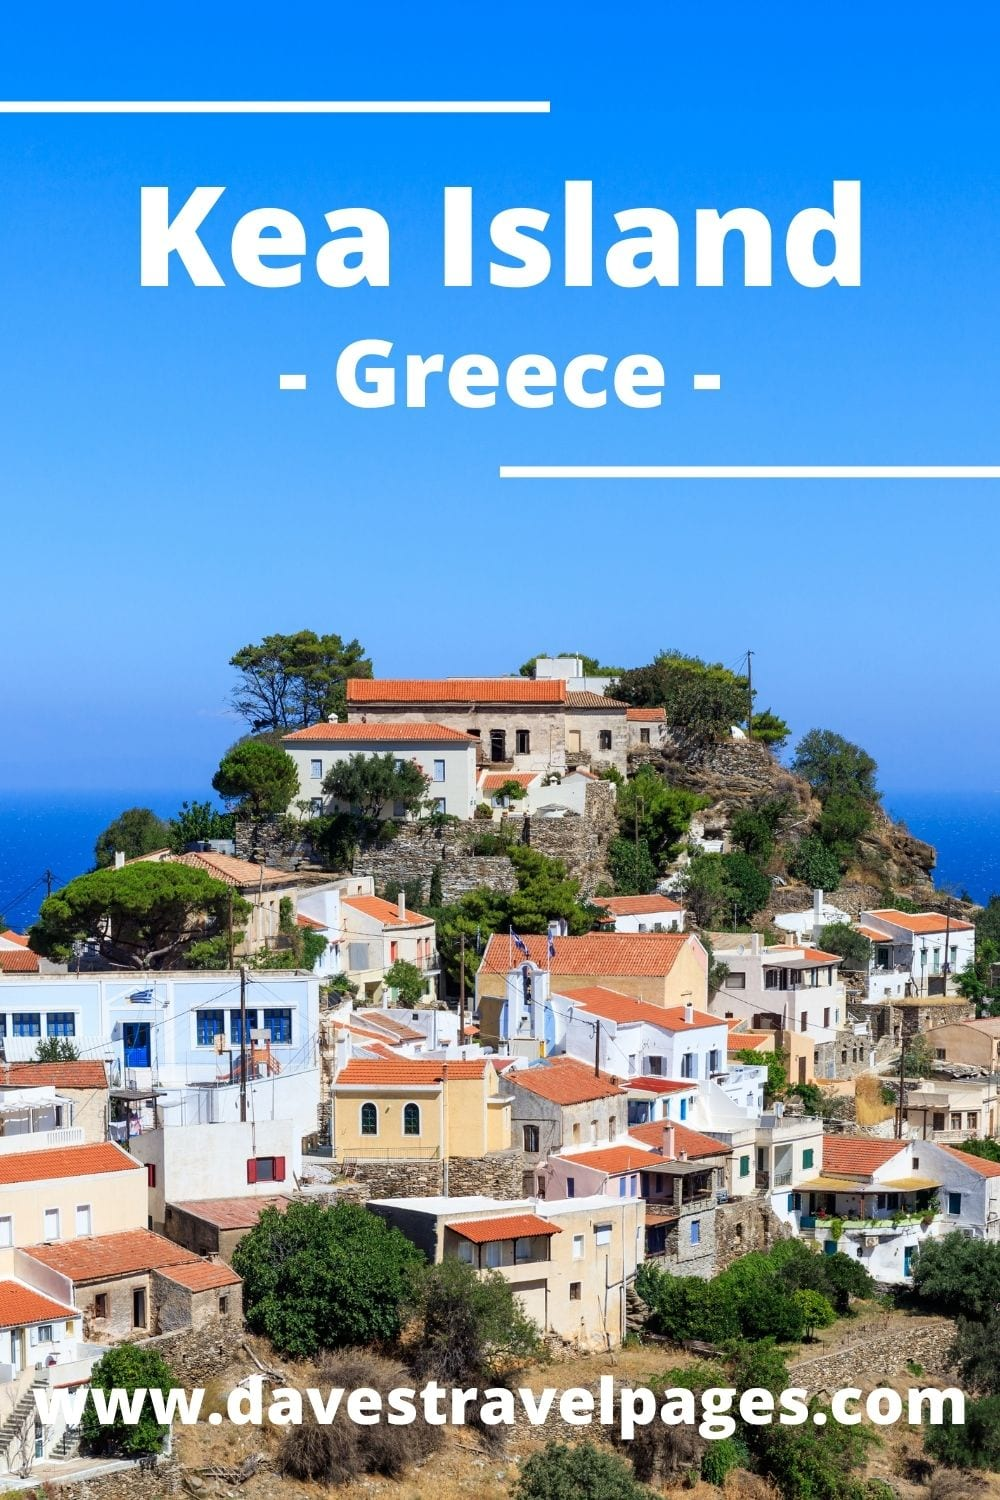 How to travel from Athens to Kea island in Greece